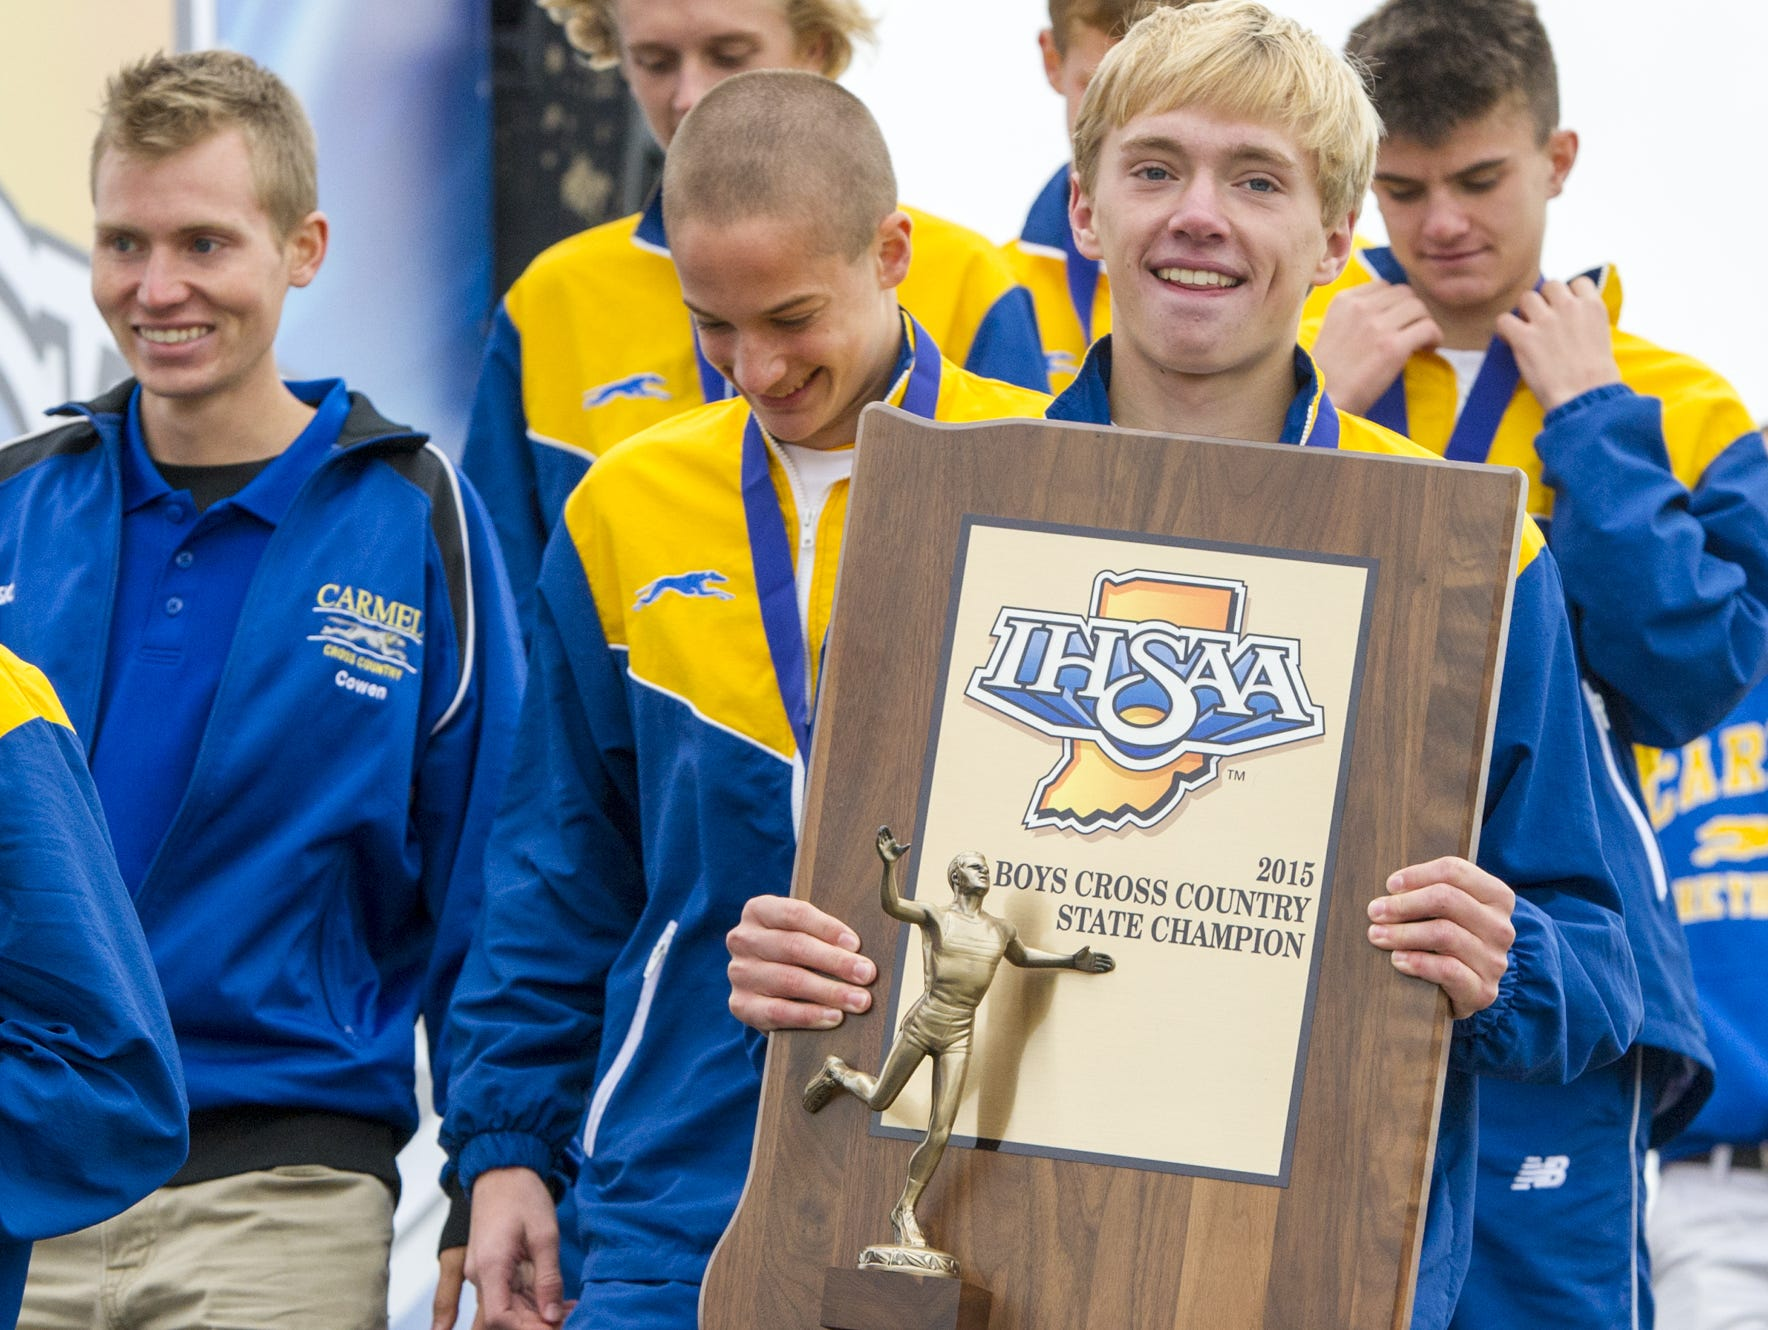 Carmel High School senior Ben Veatch carries the IHSAA state championship trophy off the stage after the awards ceremony at LaVern Gibson Championship Cross Country Course on Oct. 31, 2015, in Terre Haute, Ind. Carmel teams won both the boys and the girls titles.